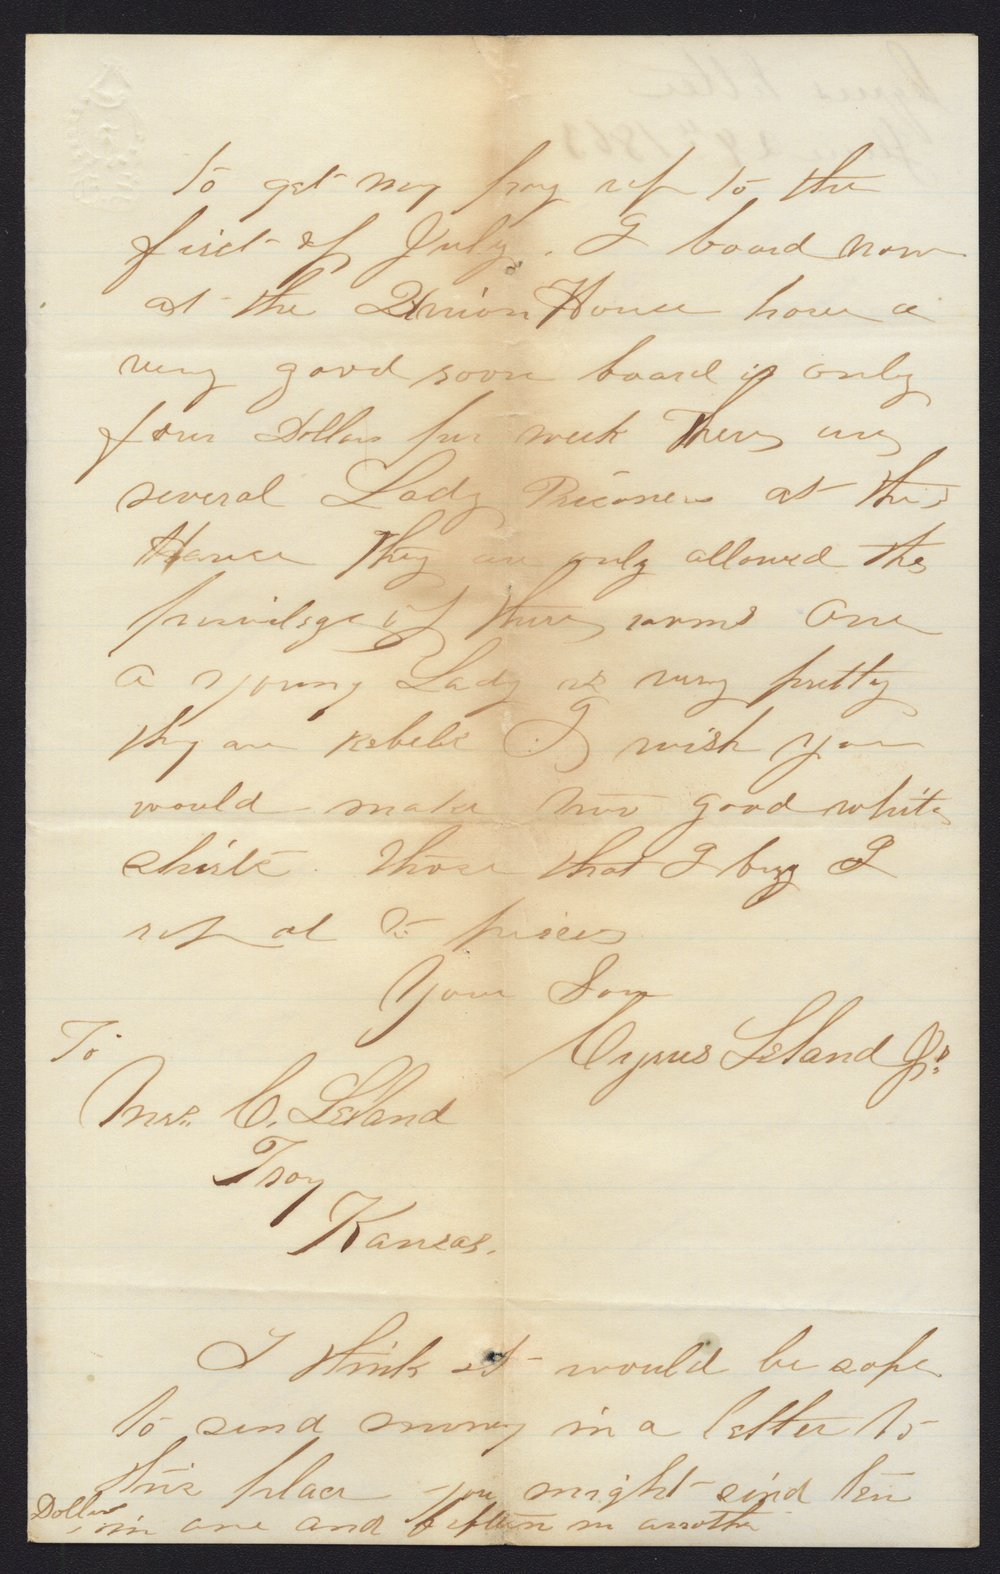 Cyrus Leland, Jr. to Mother and other family members - 2